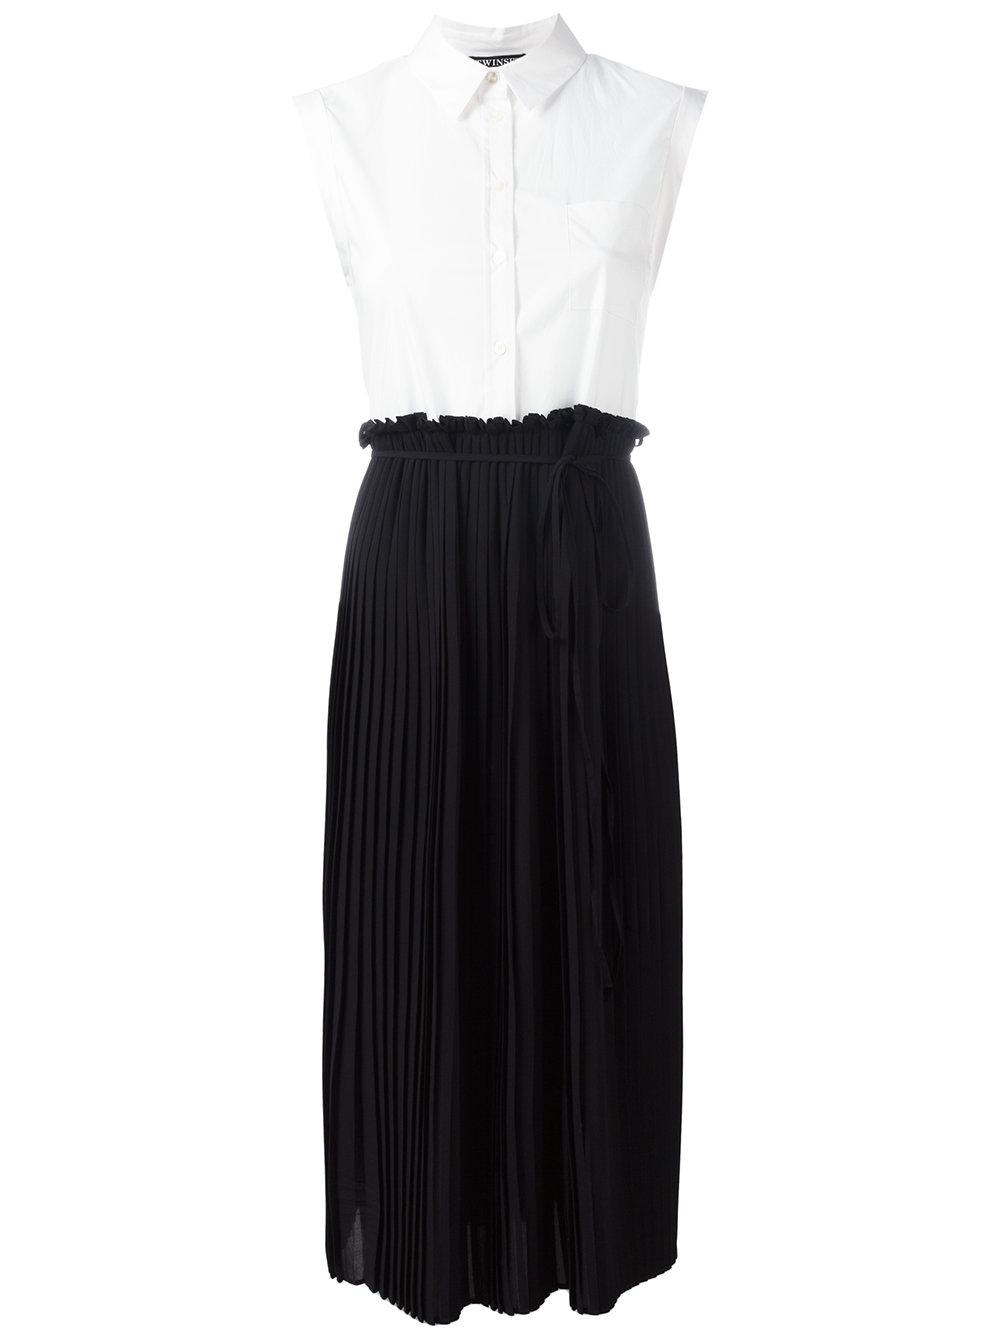 Twin set pleated shirt top dress in black lyst for Black pleated dress shirt